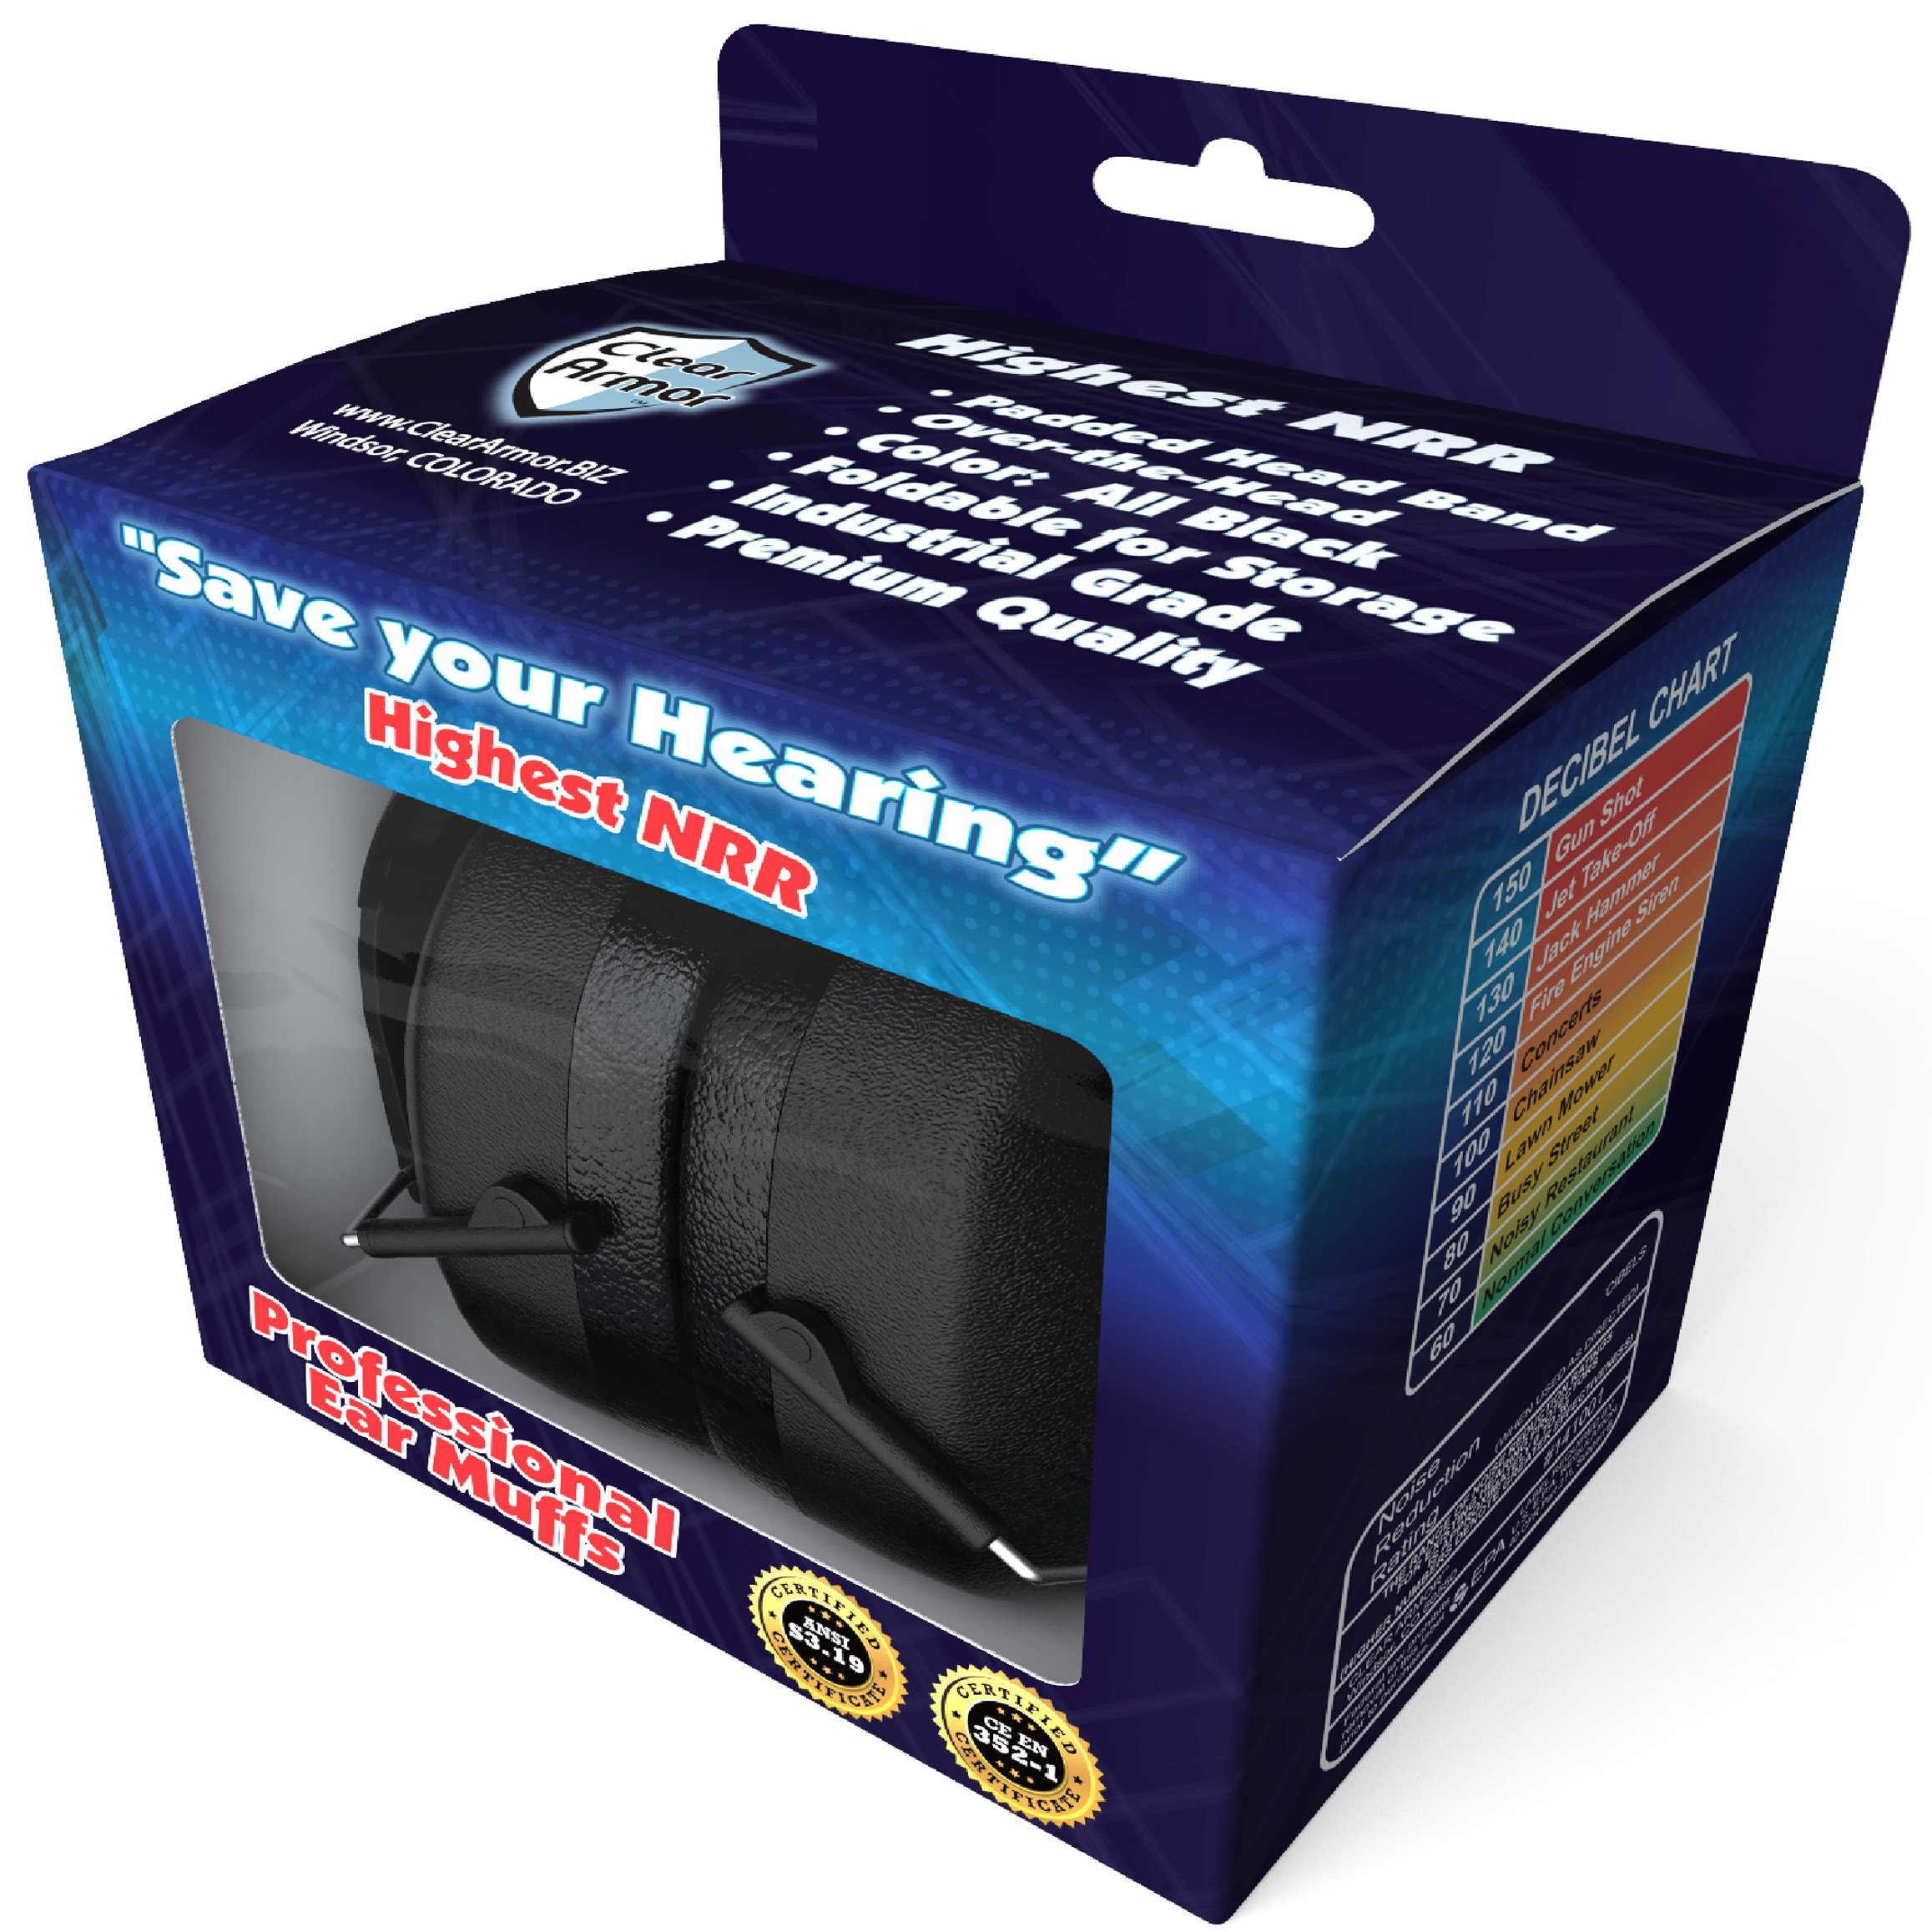 ClearArmor 141001 Shooters Hearing Protection Safety Ear Muffs Folding-Padded Head Band Ear Cups, Black by ClearArmor (Image #5)